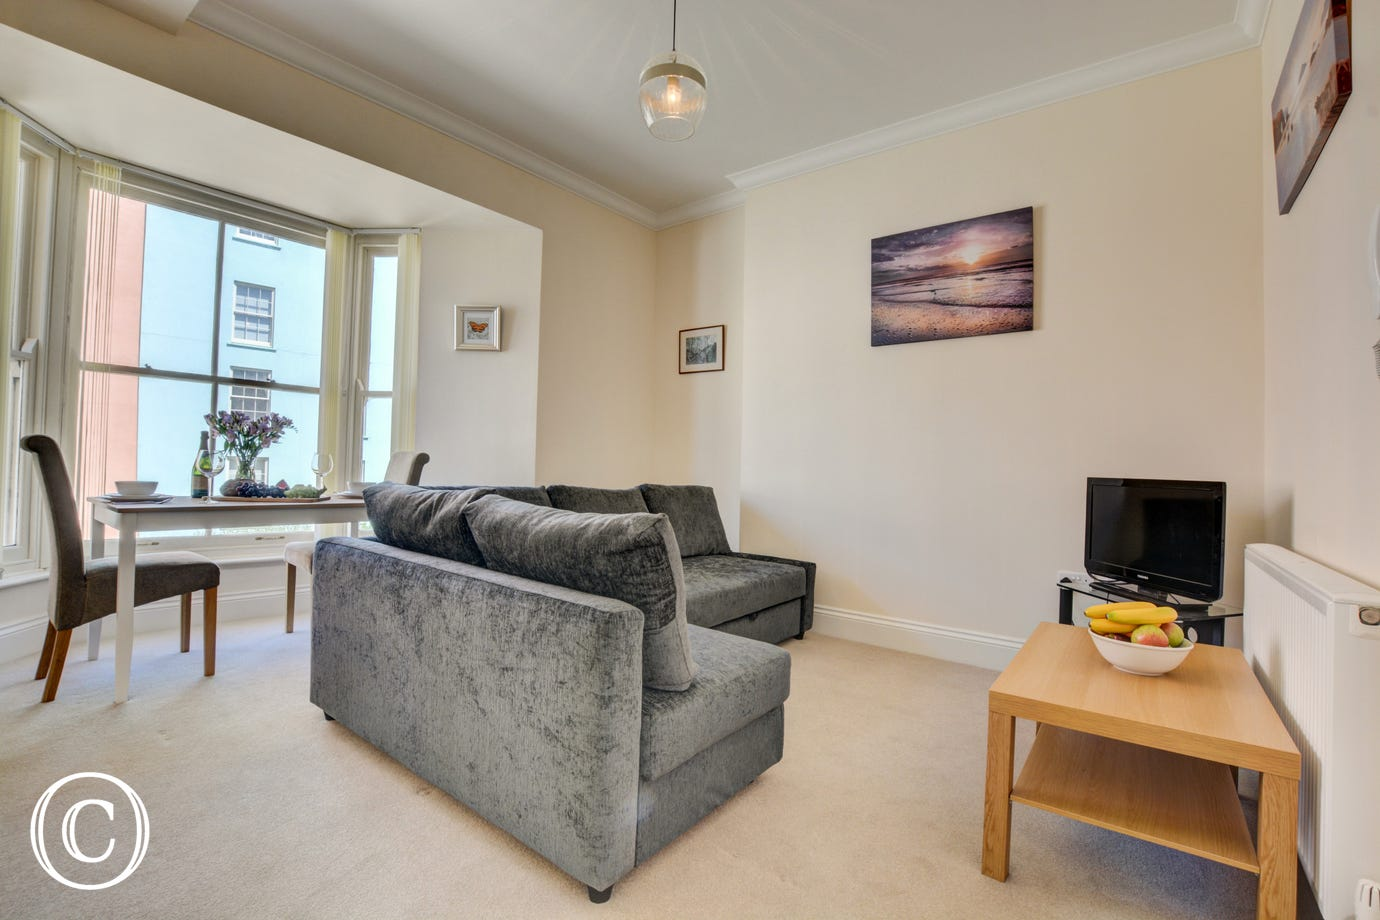 Ope plan living space at this Holiday Apartment in Tenby